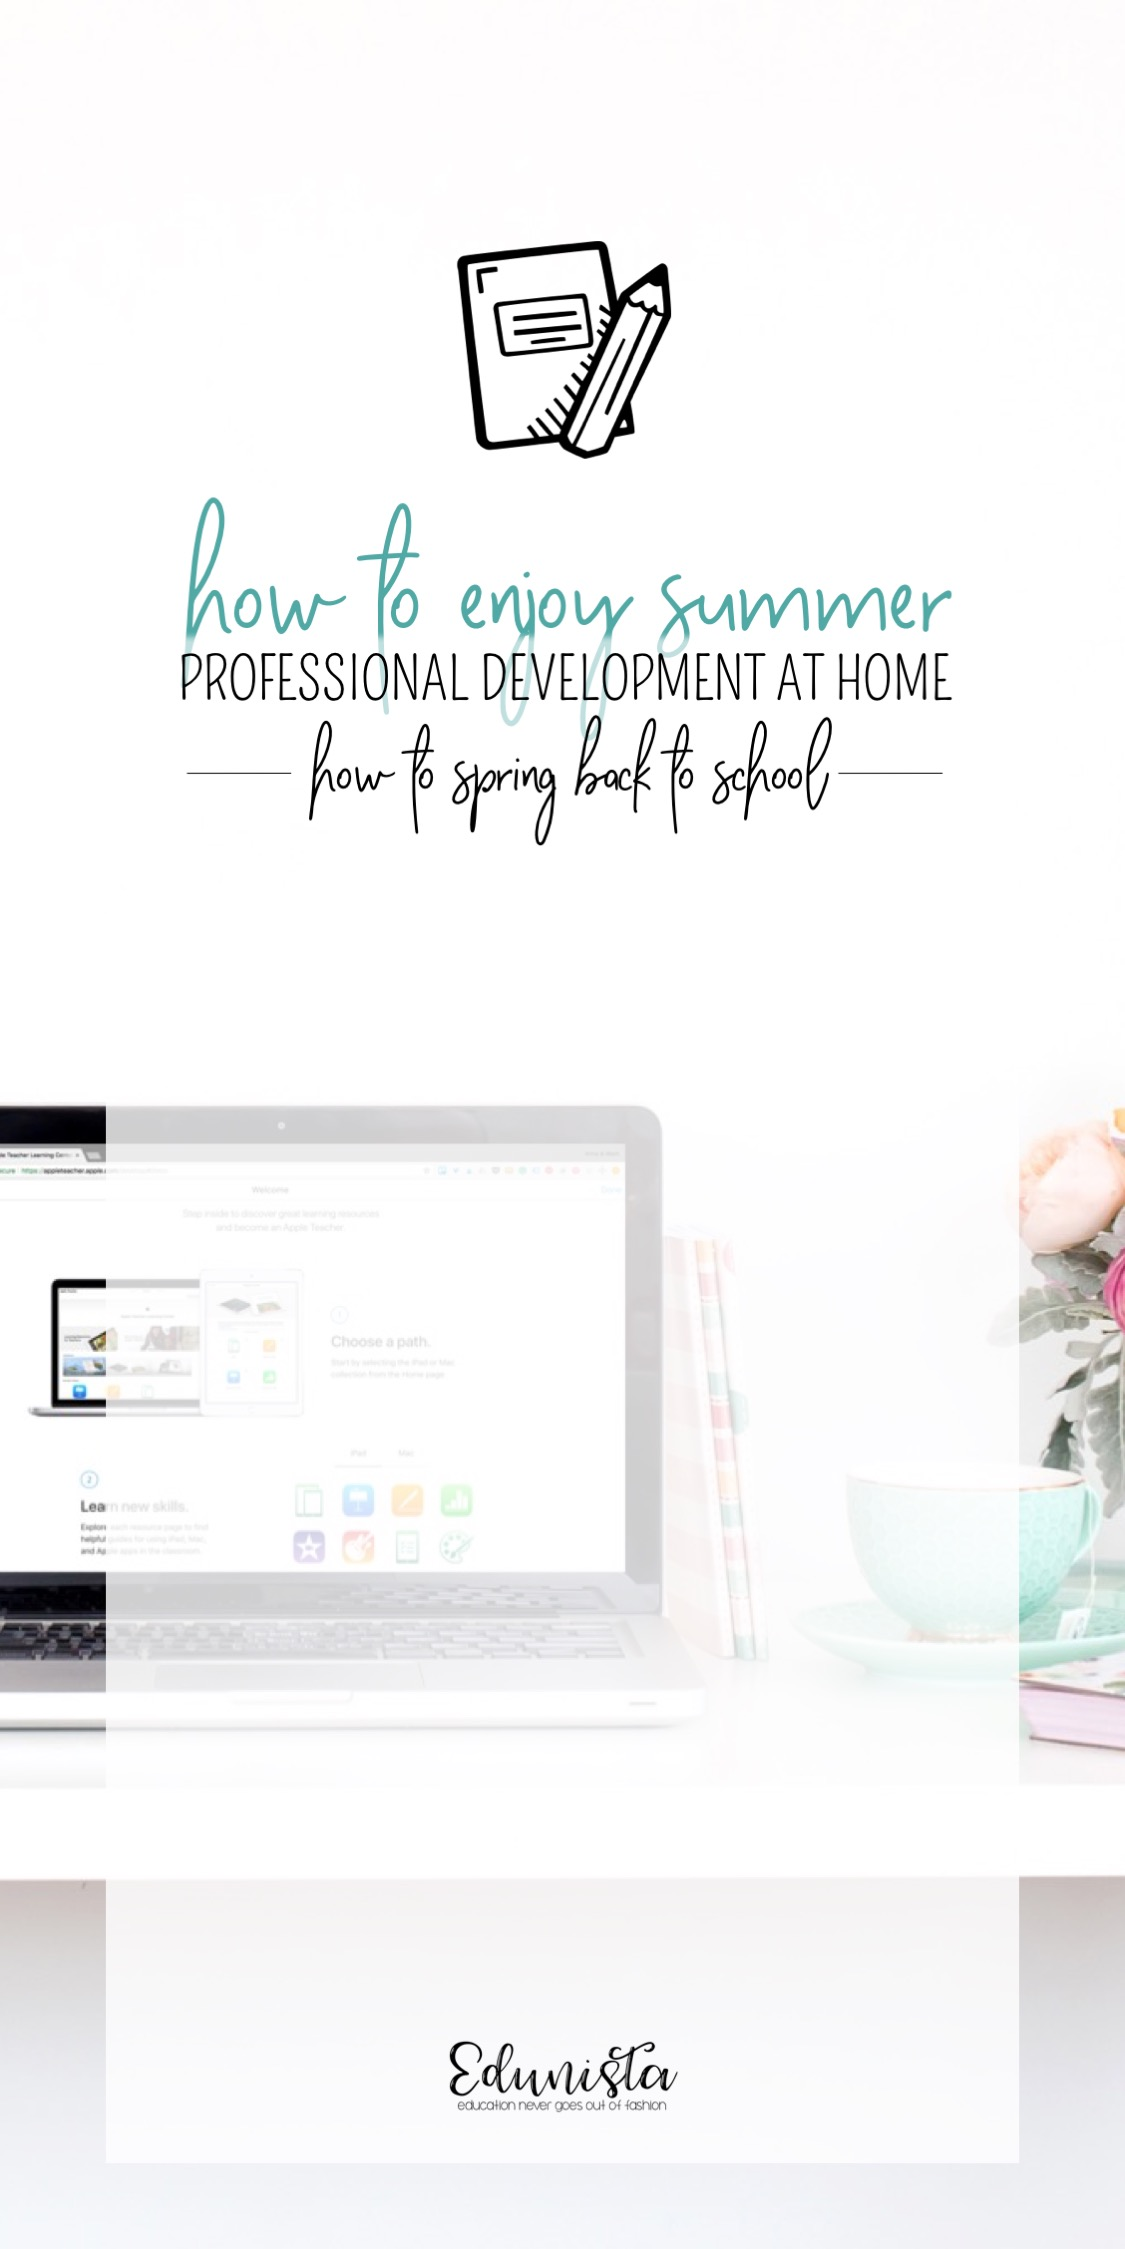 This post is filled with some of the best professional development teaching resources that are out there for teachers looking grow and develop their teaching skills this summer! Can't wait to dig in!